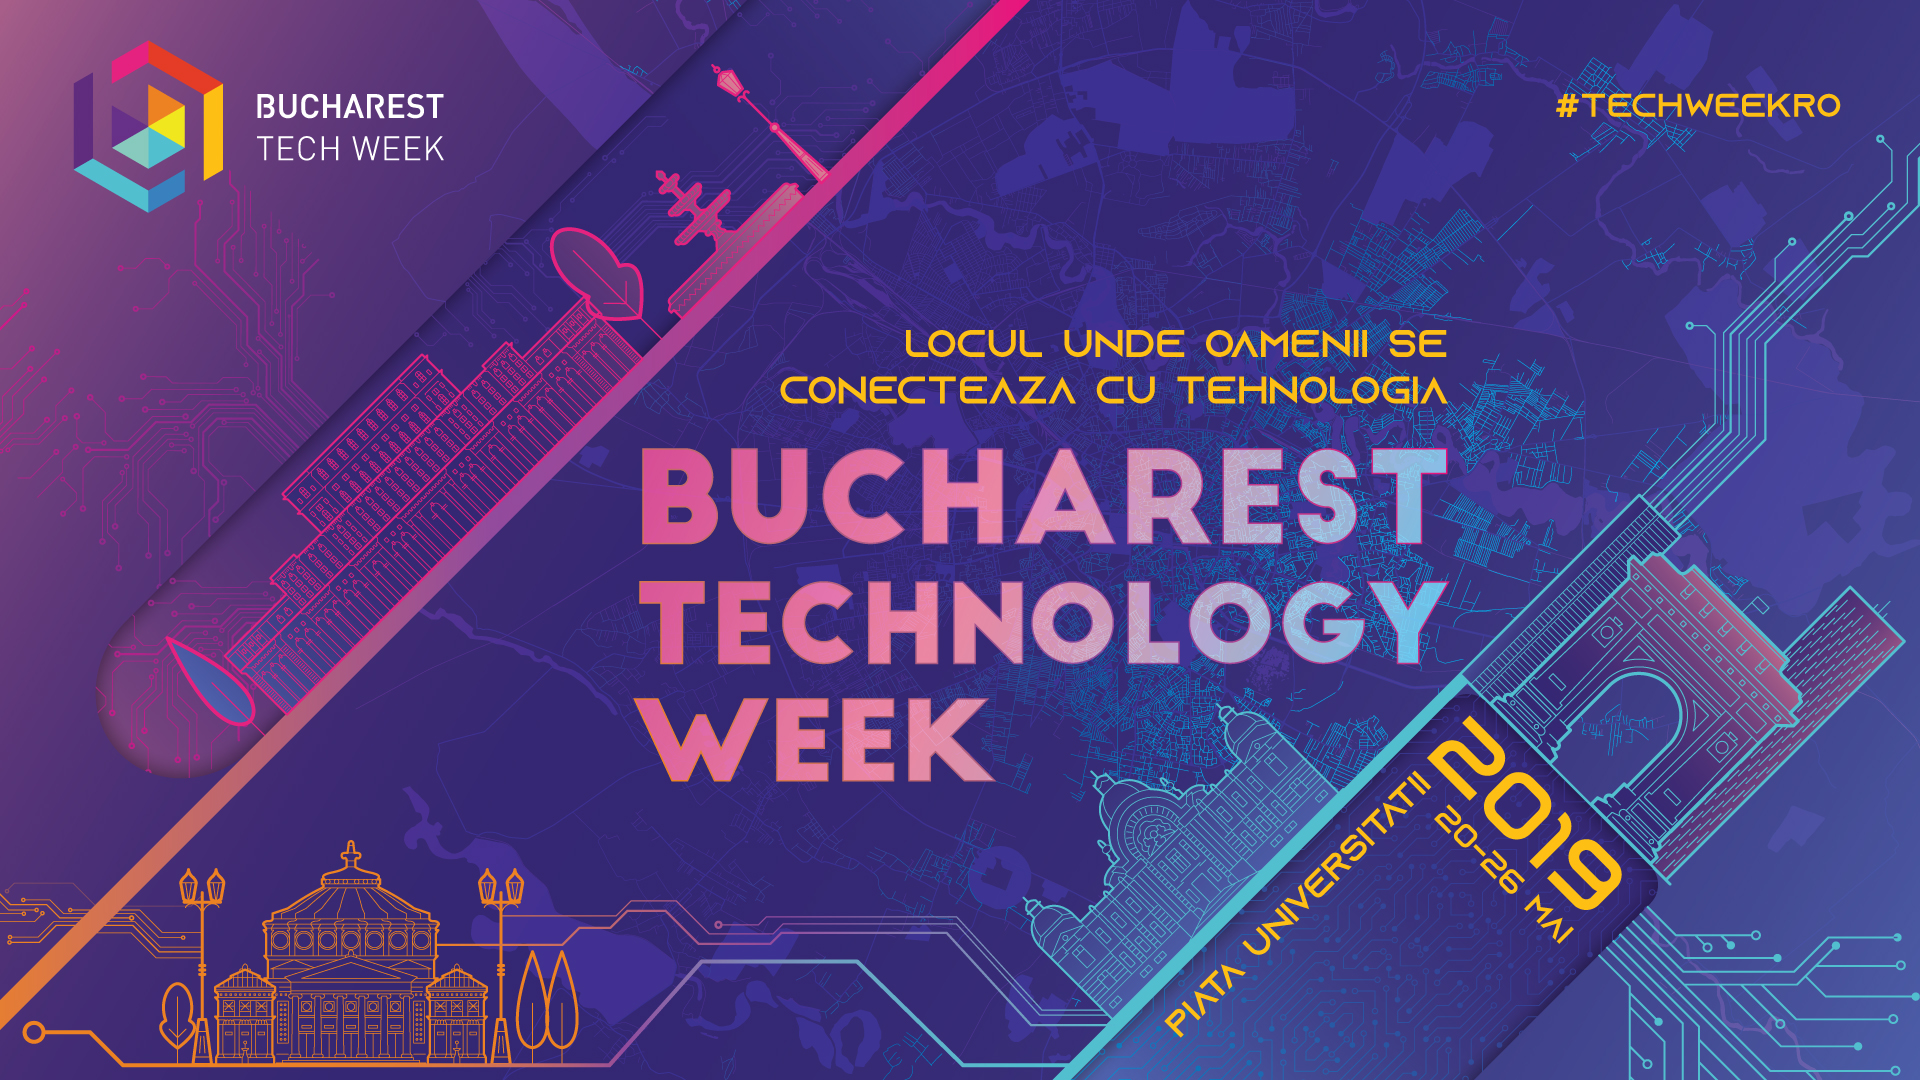 The most advanced social robot in the world will be present at Bucharest Tech Week 2019